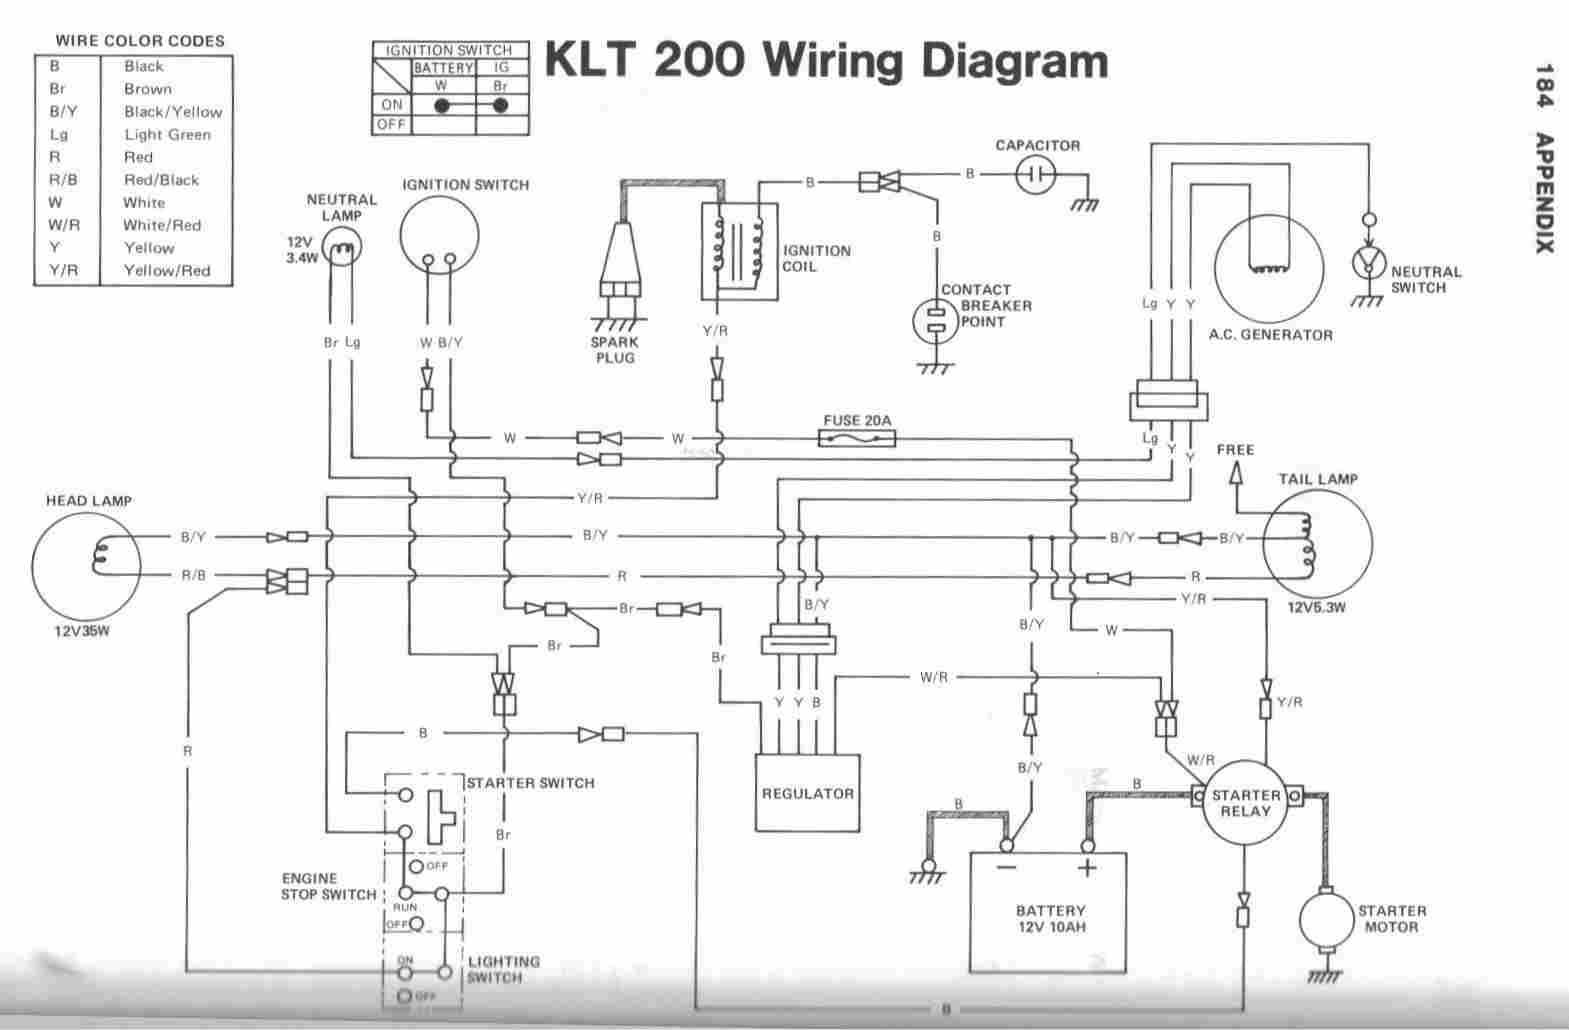 electricity wiring diagrams painless harness diagram residential electrical pdf easy routing